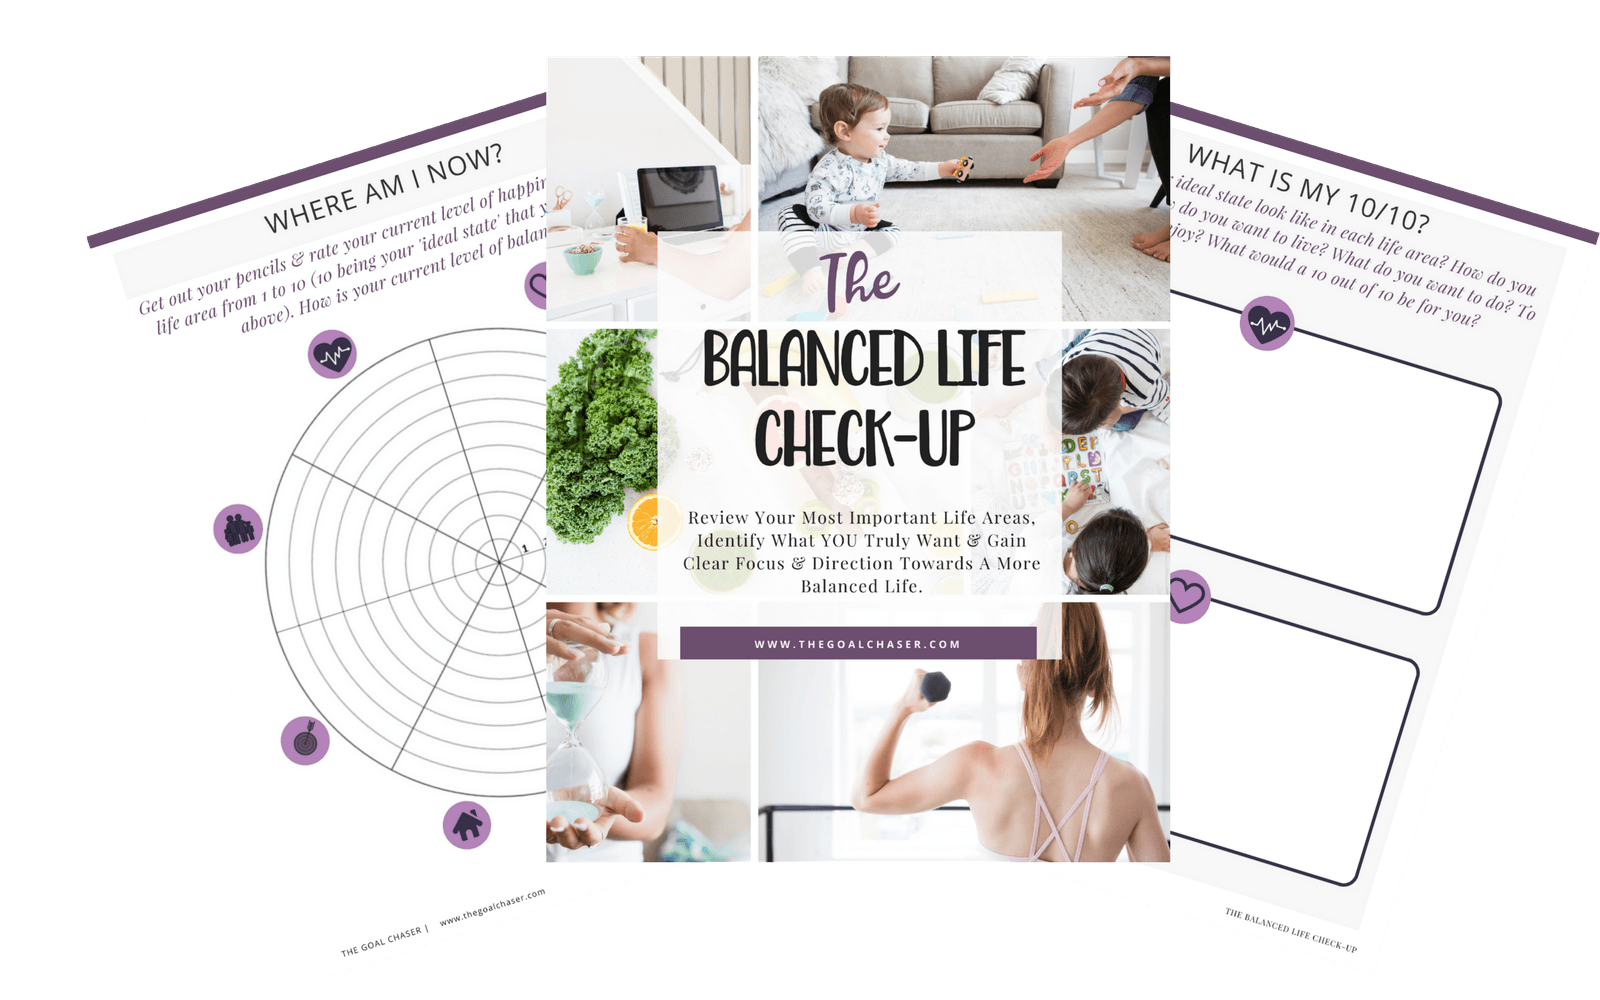 Download the FREE Balanced Life Check-up Worksheets